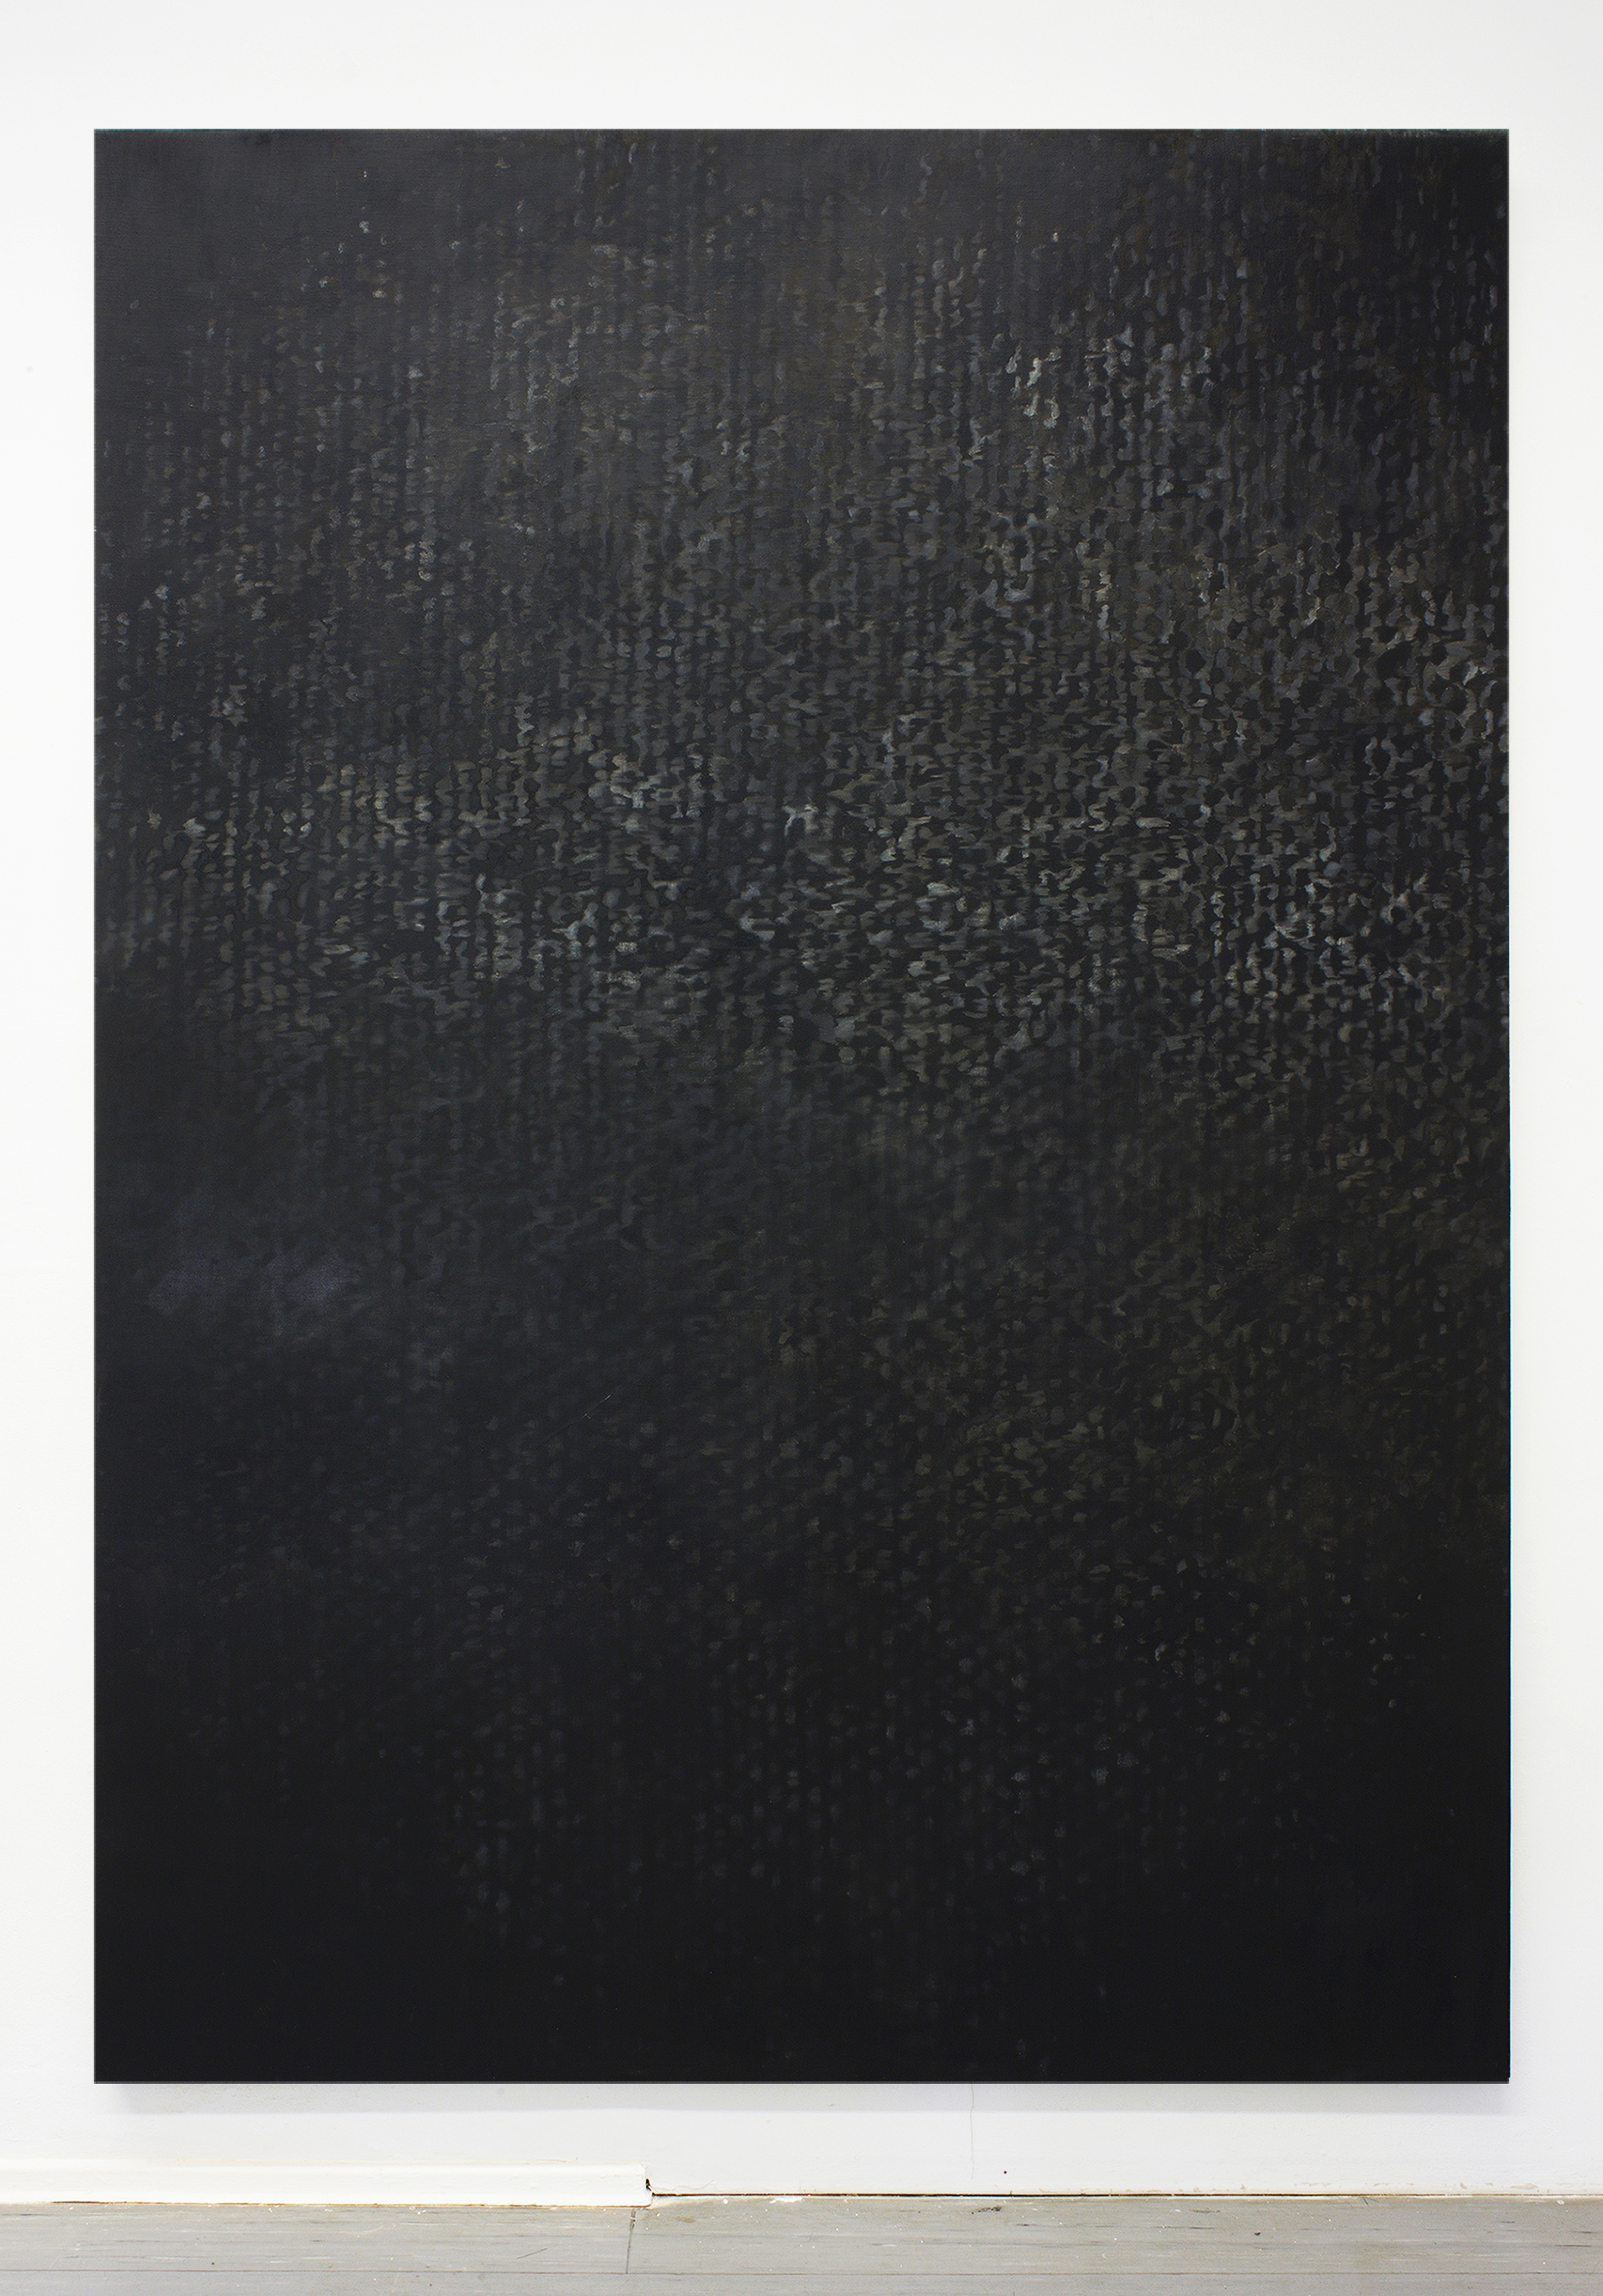 Canvas 01 is a monochromatic black painting by Erik Andersen. the Canvas series consists of abstract paintings that refer to the material and the structure of the canvas